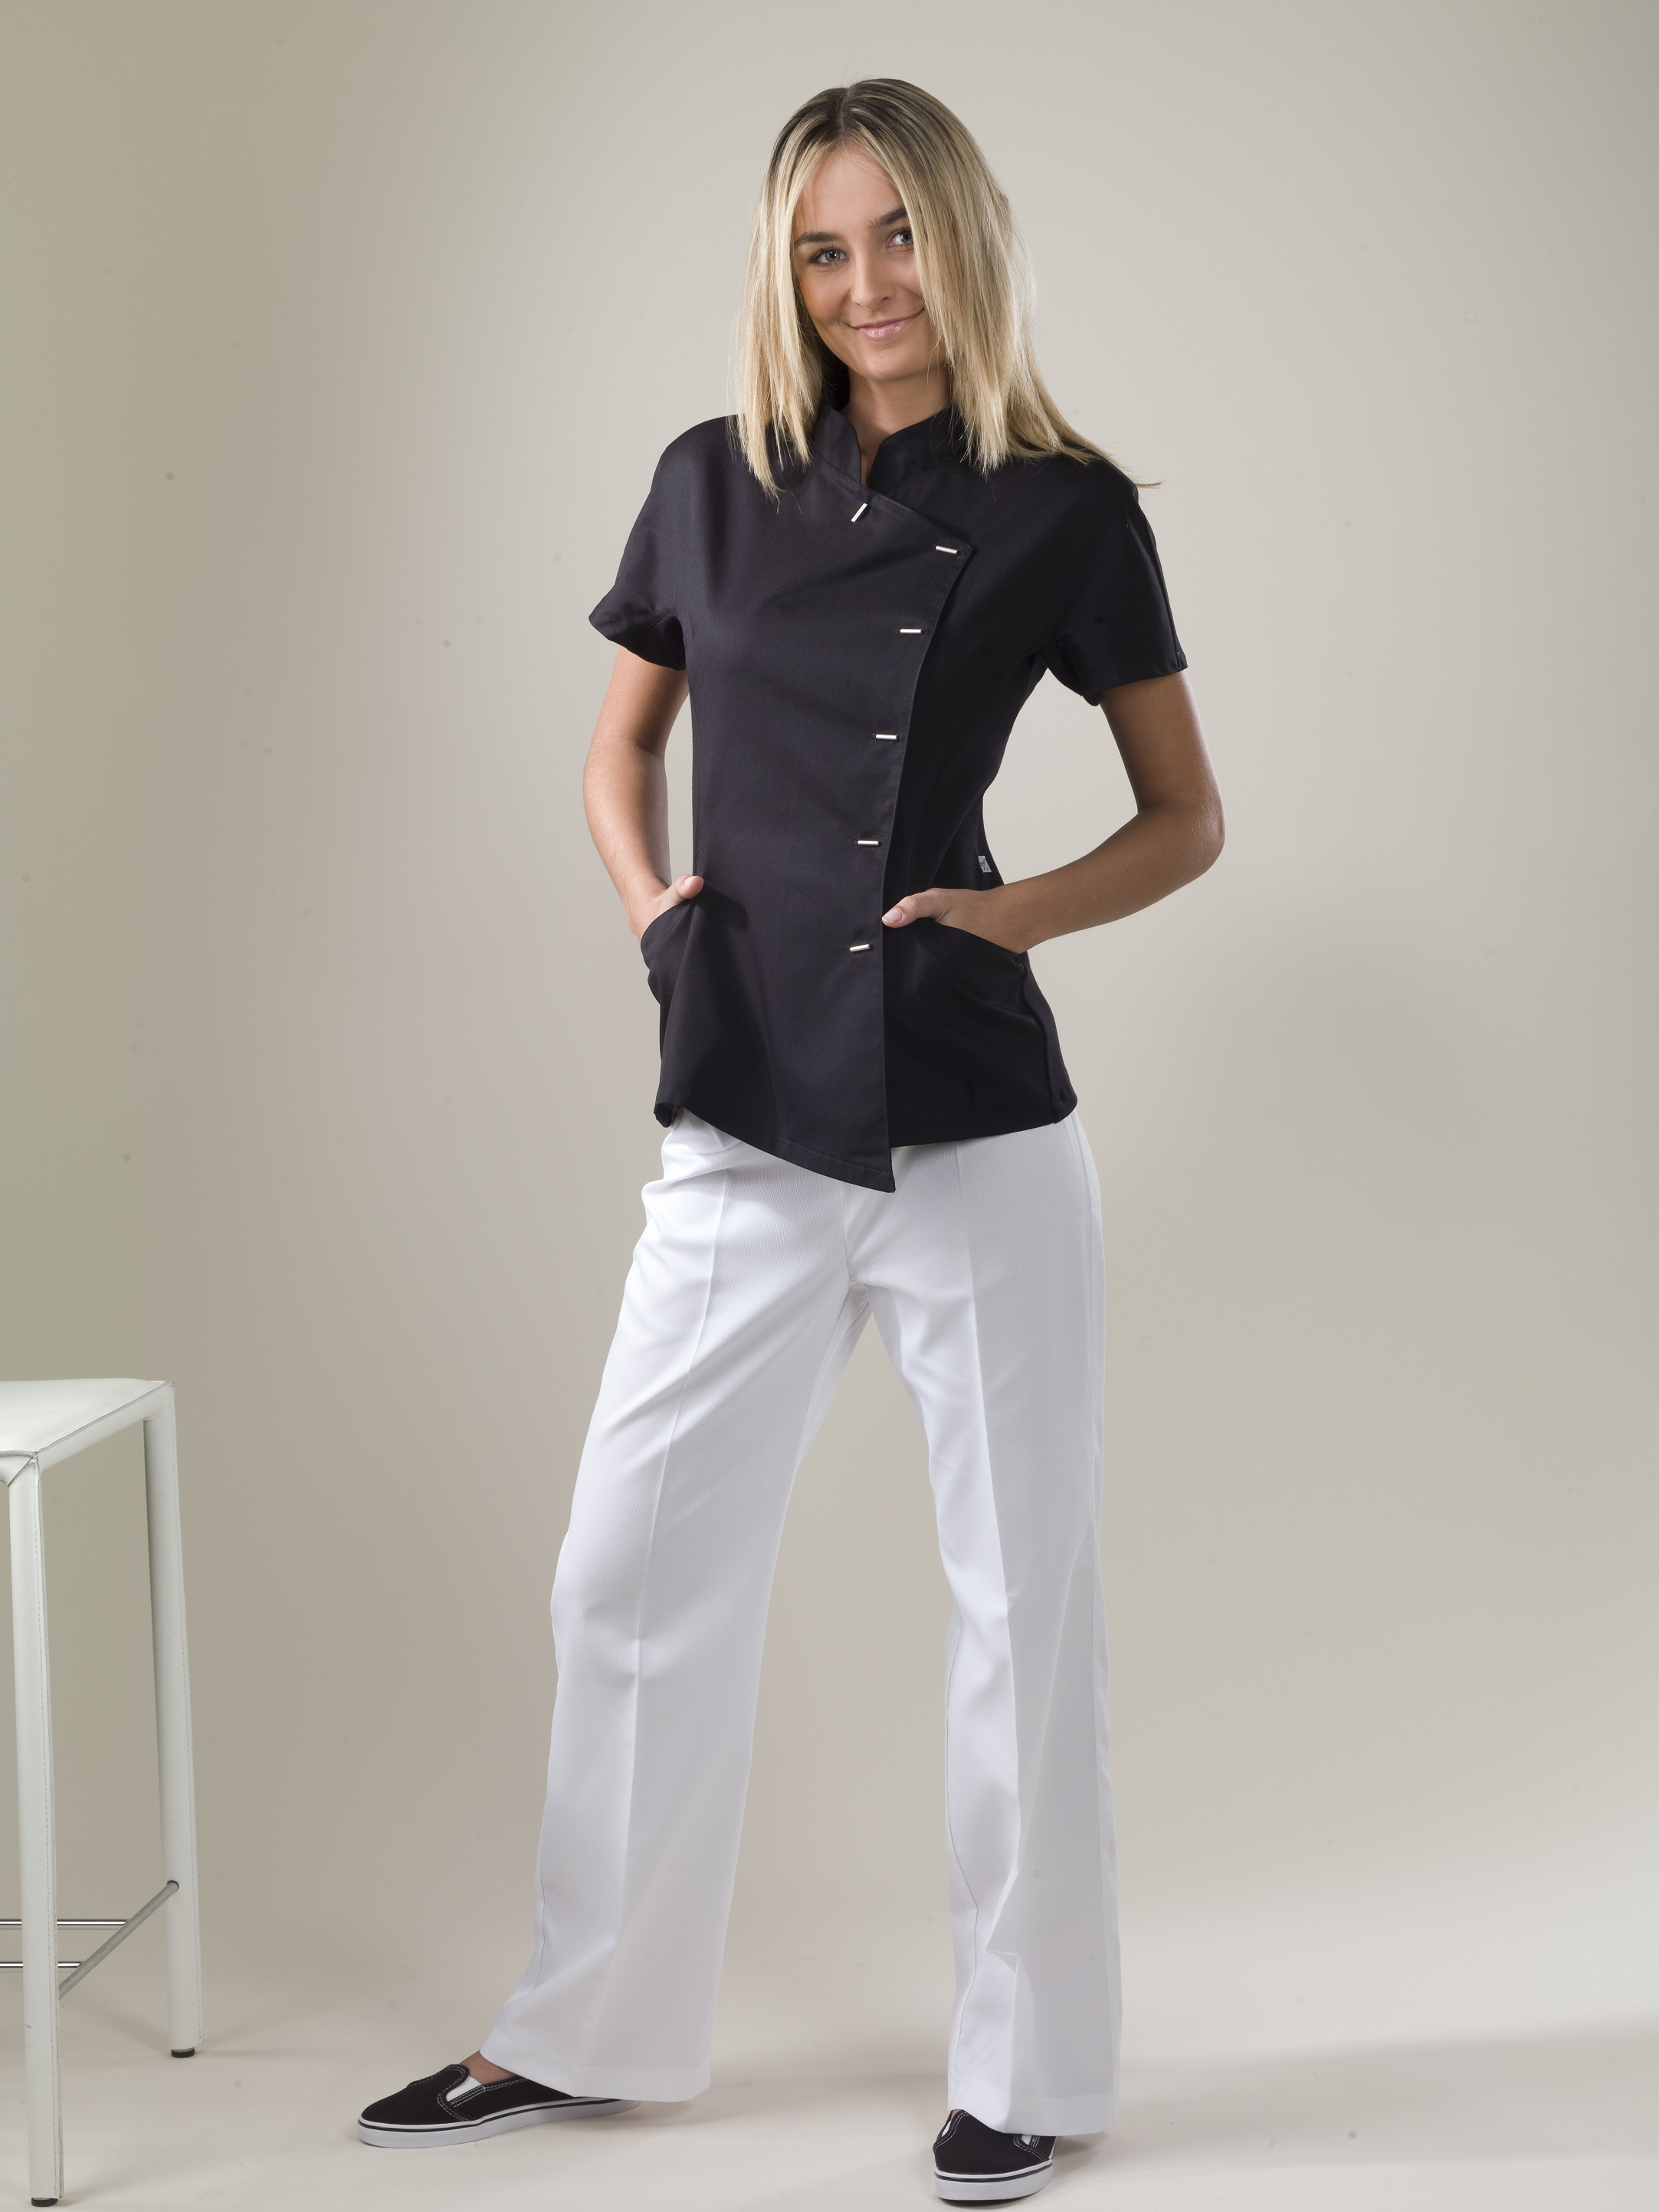 Java top monique mathieu paris for Spa uniform tops